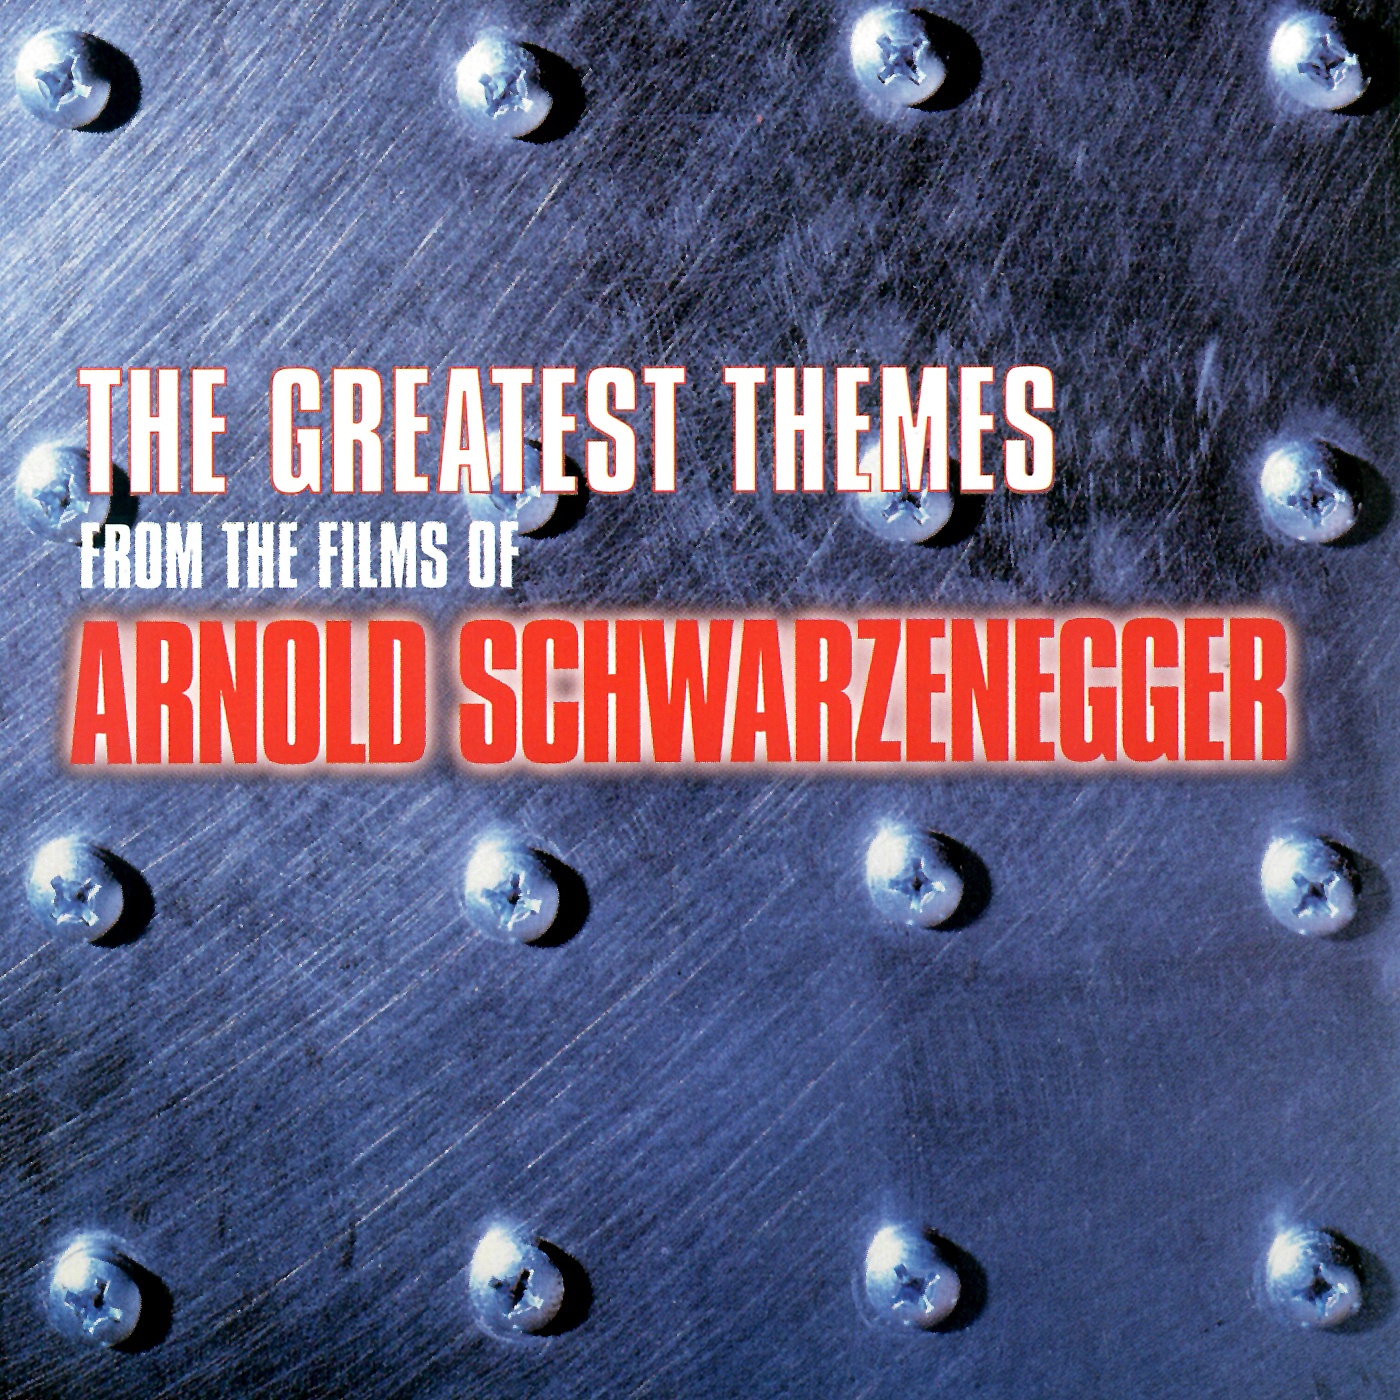 The Greatest Themes from the Films of Arnold Schwarzenegger